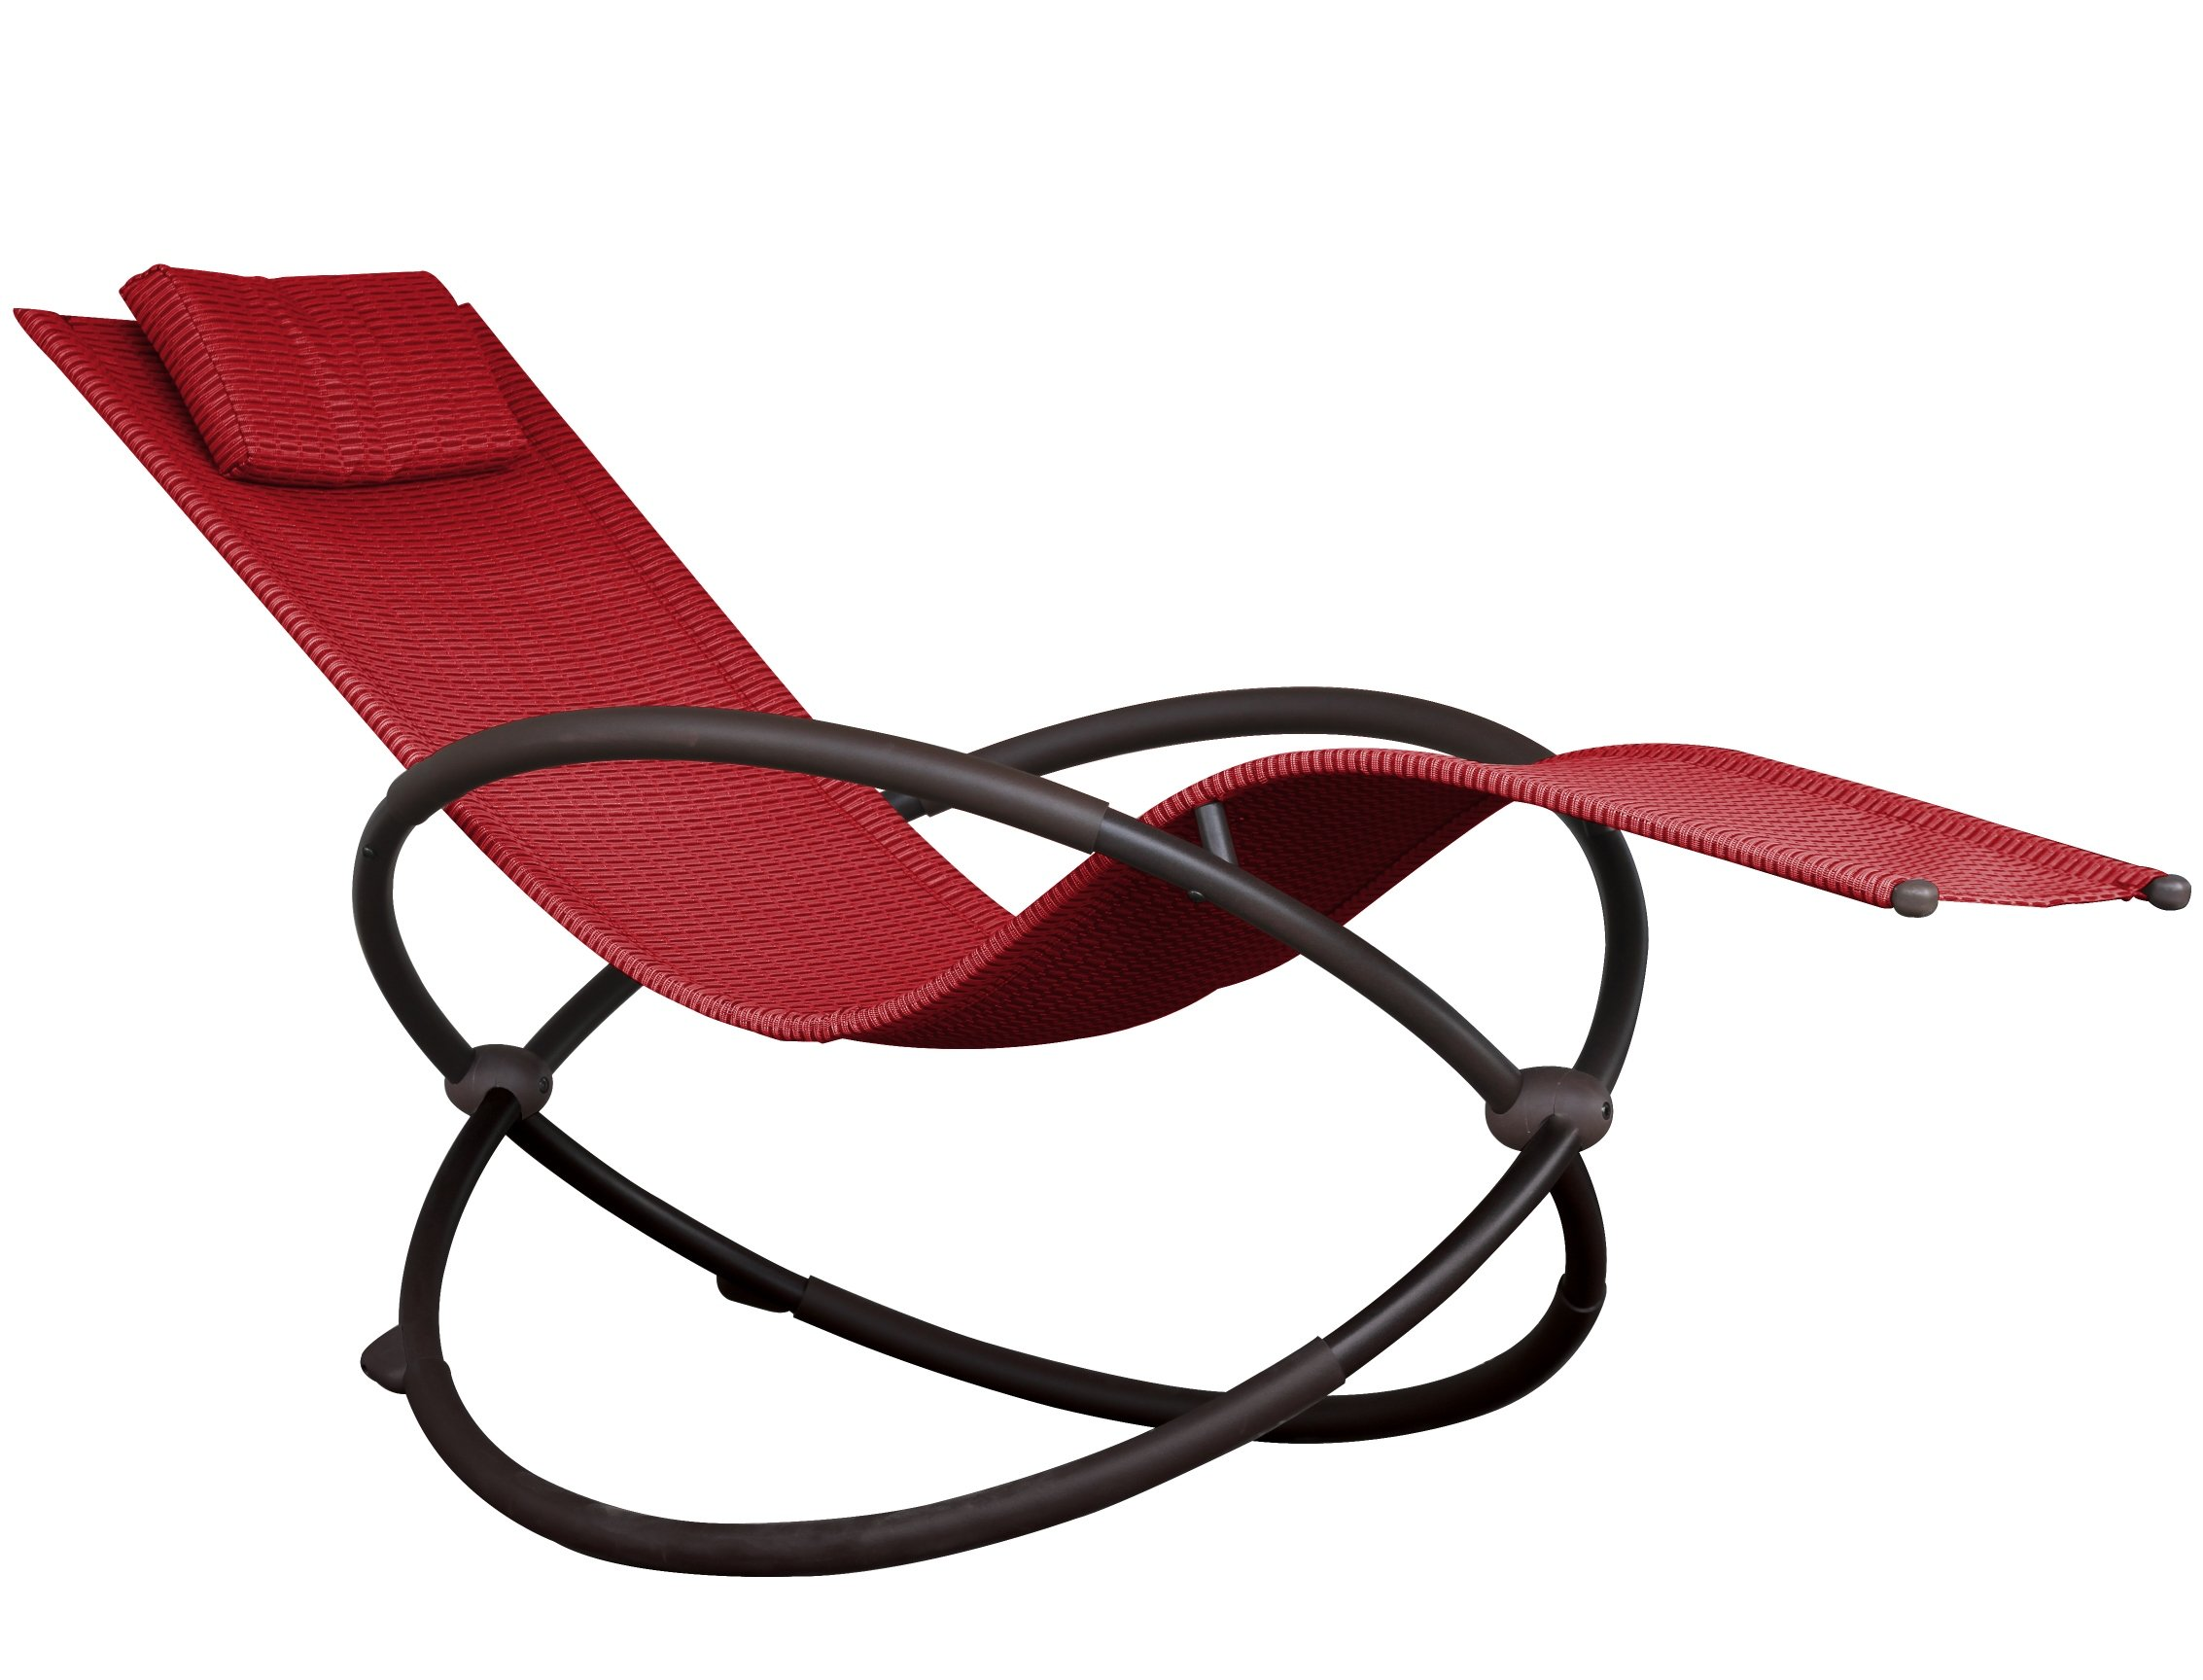 Vivere ORBL1-CR Orbital Lounger, Cherry Red - Ergonomically designed to drastically increase your R&R time Full recline makes sleeping in your bed lose its appeal Acrylic mesh seat that easily shakes off the water - patio-furniture, patio-chairs, patio - 71HNlTRhfVL -